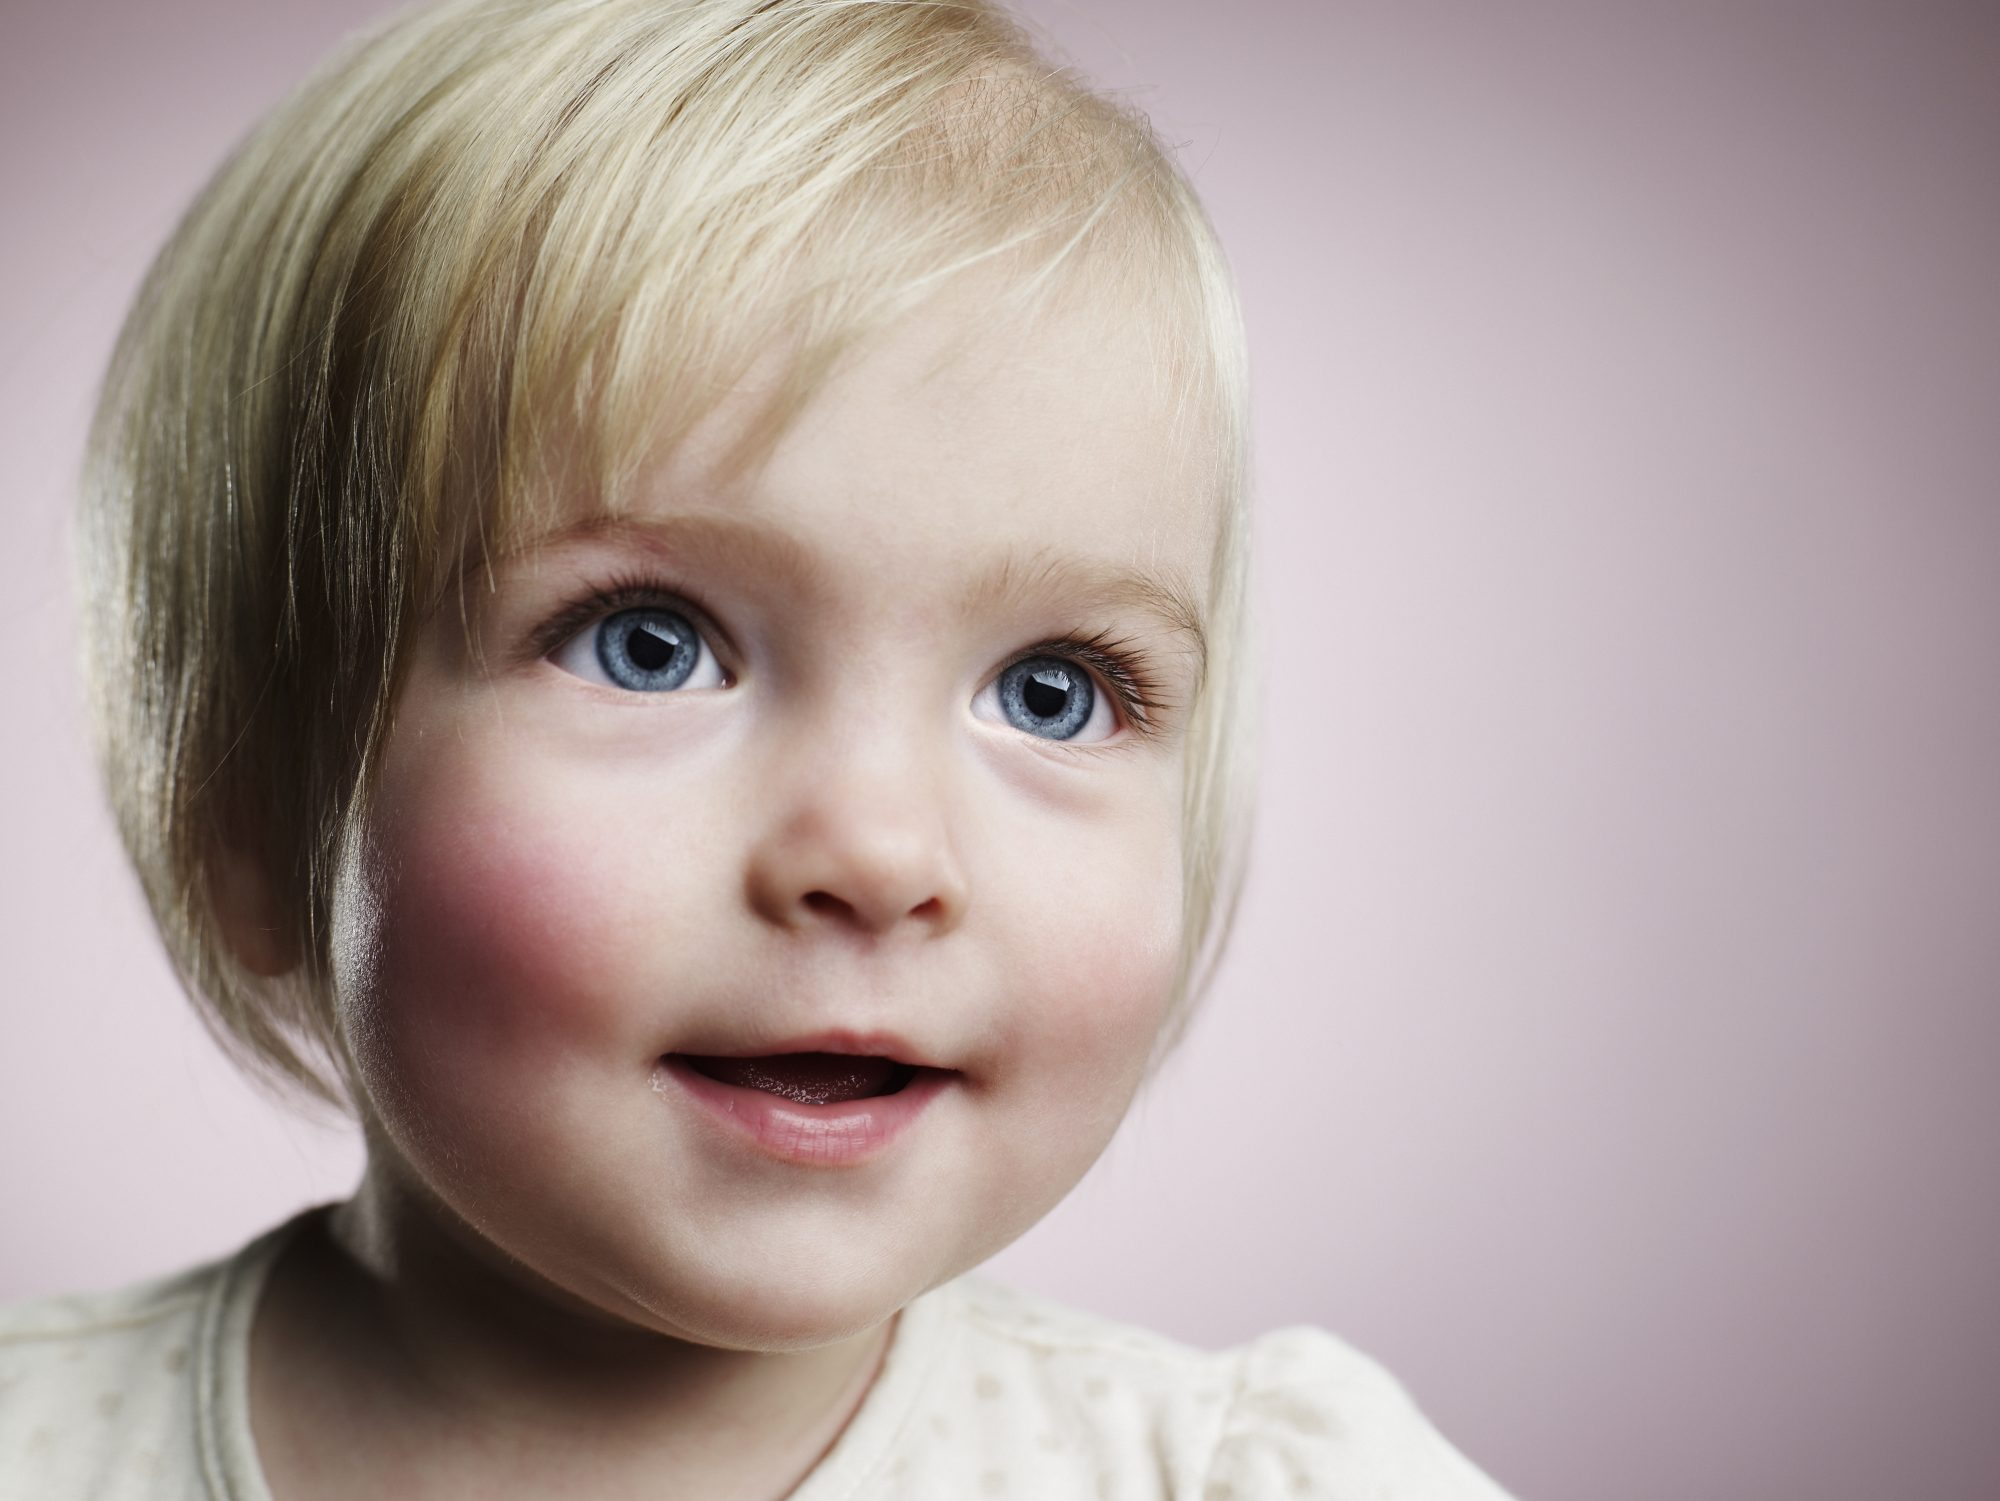 WATCH: 50 Adorable Gender Neutral Baby Names